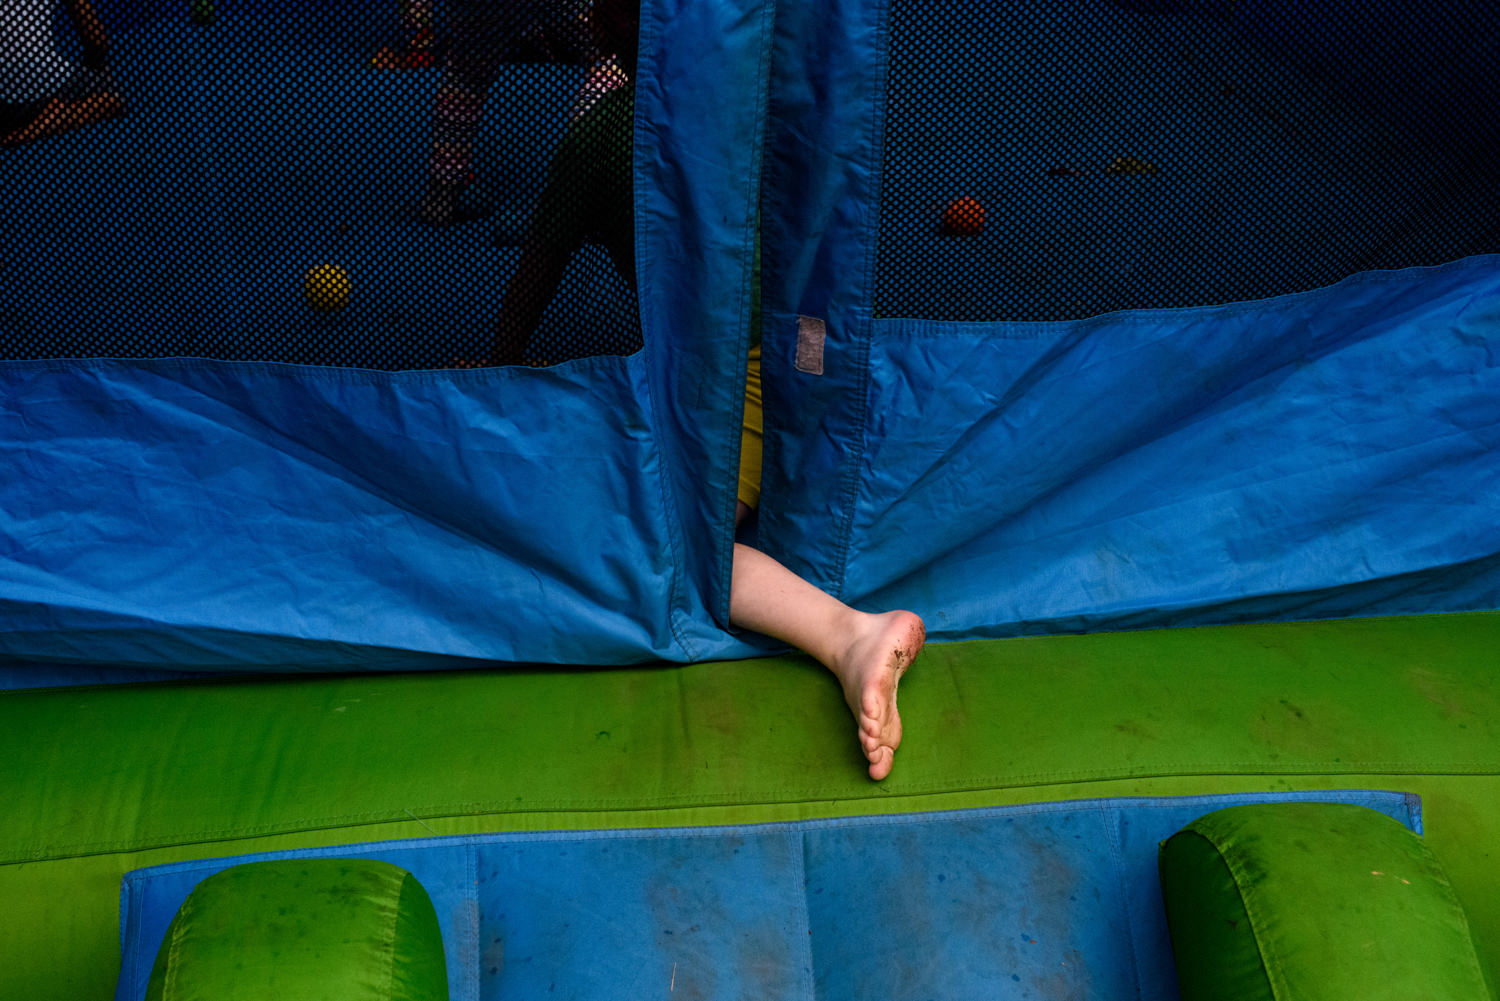 dirty foot as kid gets on the trampoline